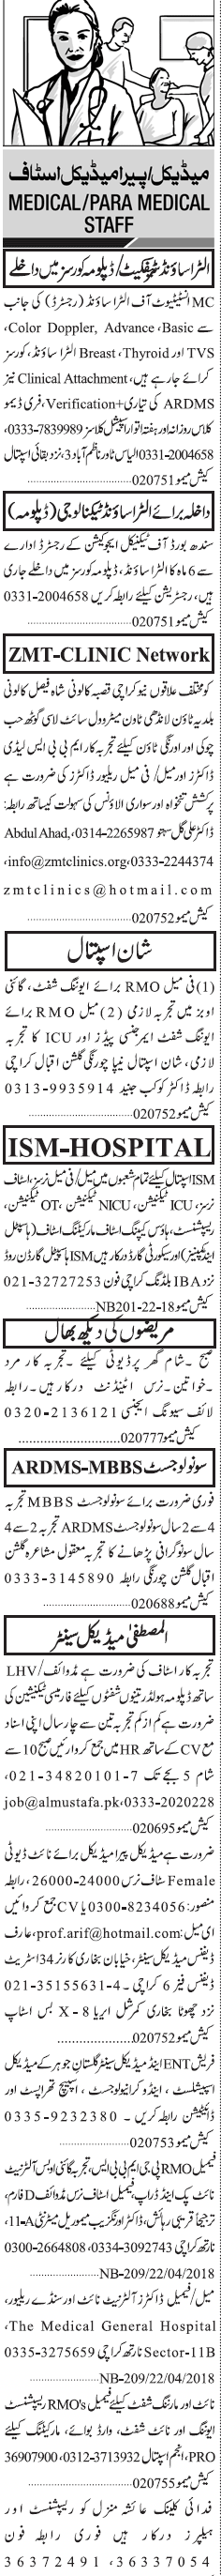 MBBS Lady Doctors, Resident Medical Officers Wanted